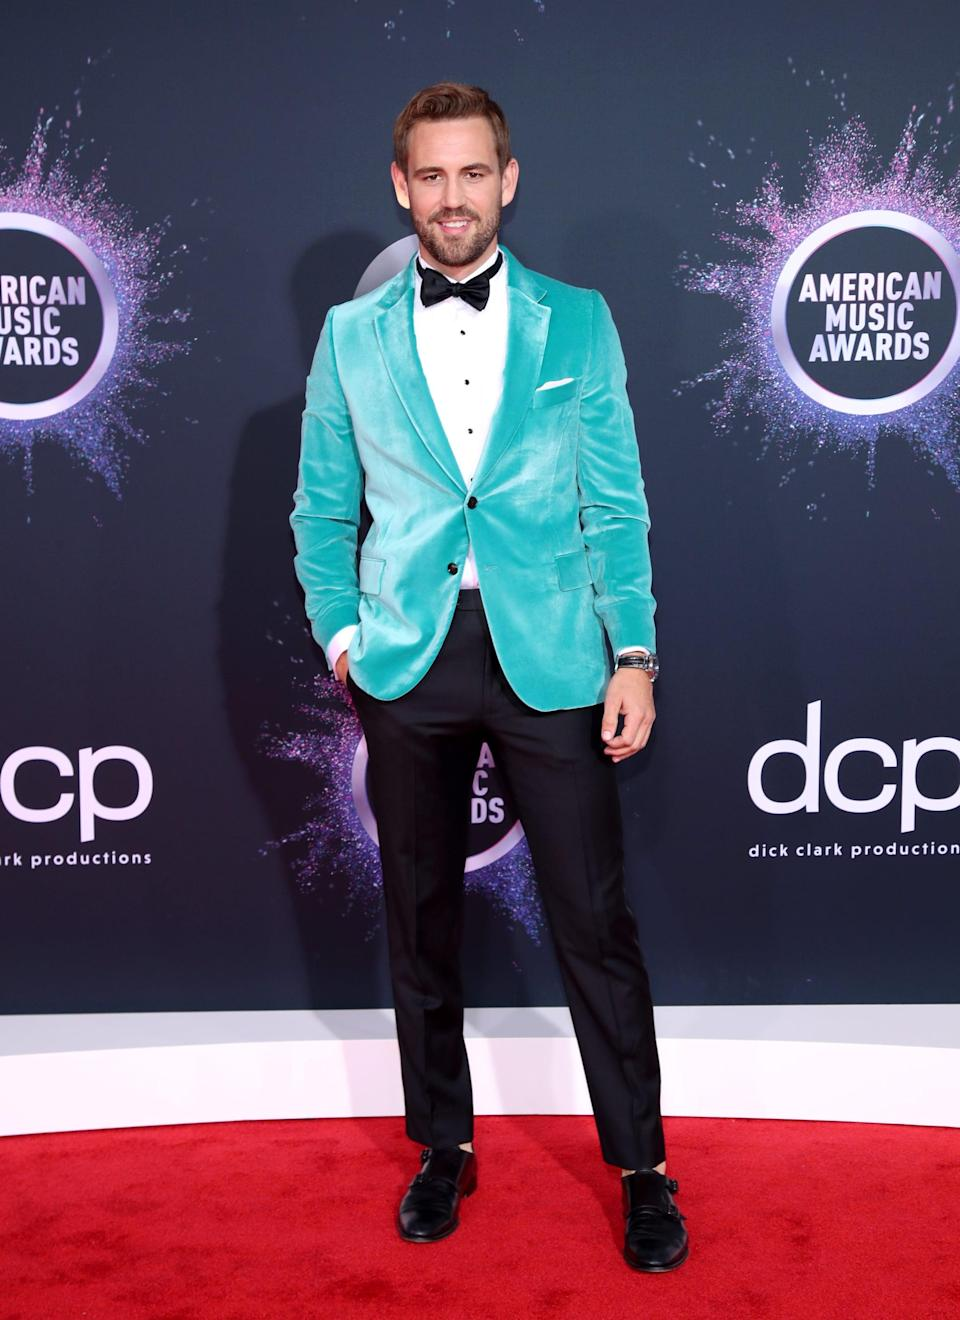 <p>Former <b>Bachelor</b> star Nick Viall rocked the red carpet in a suit with a green blazer.</p>